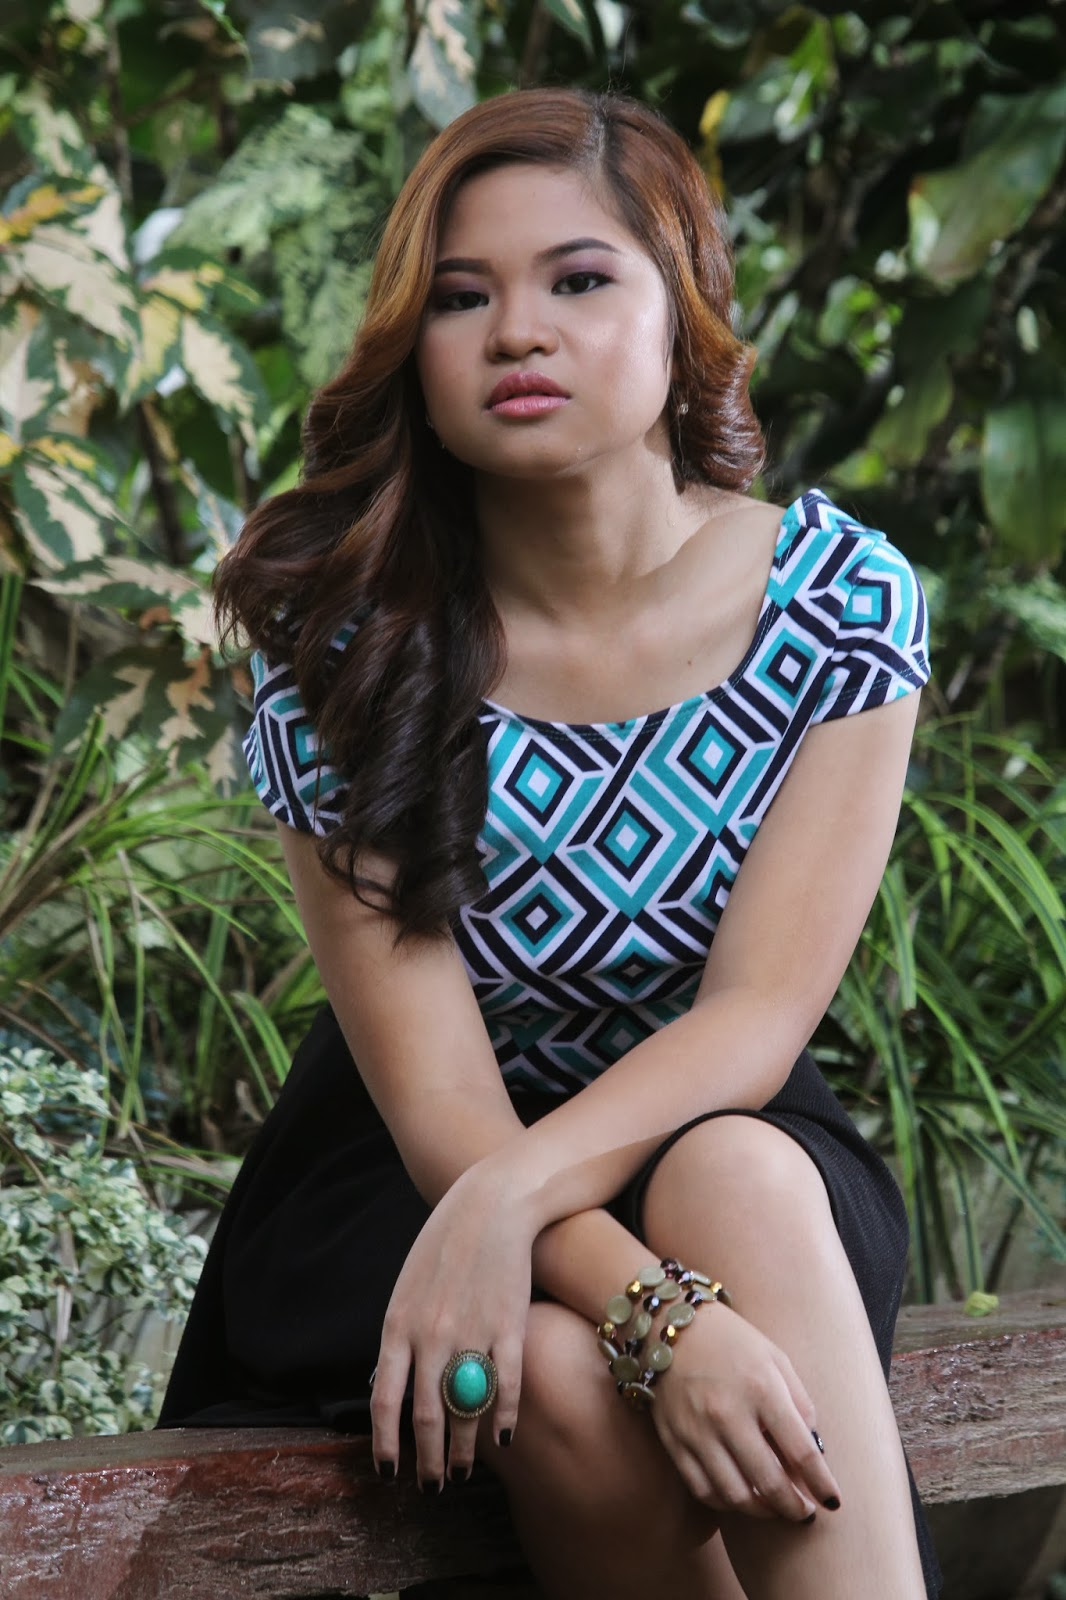 Lizette's Pre Debut Pictorial - pic2